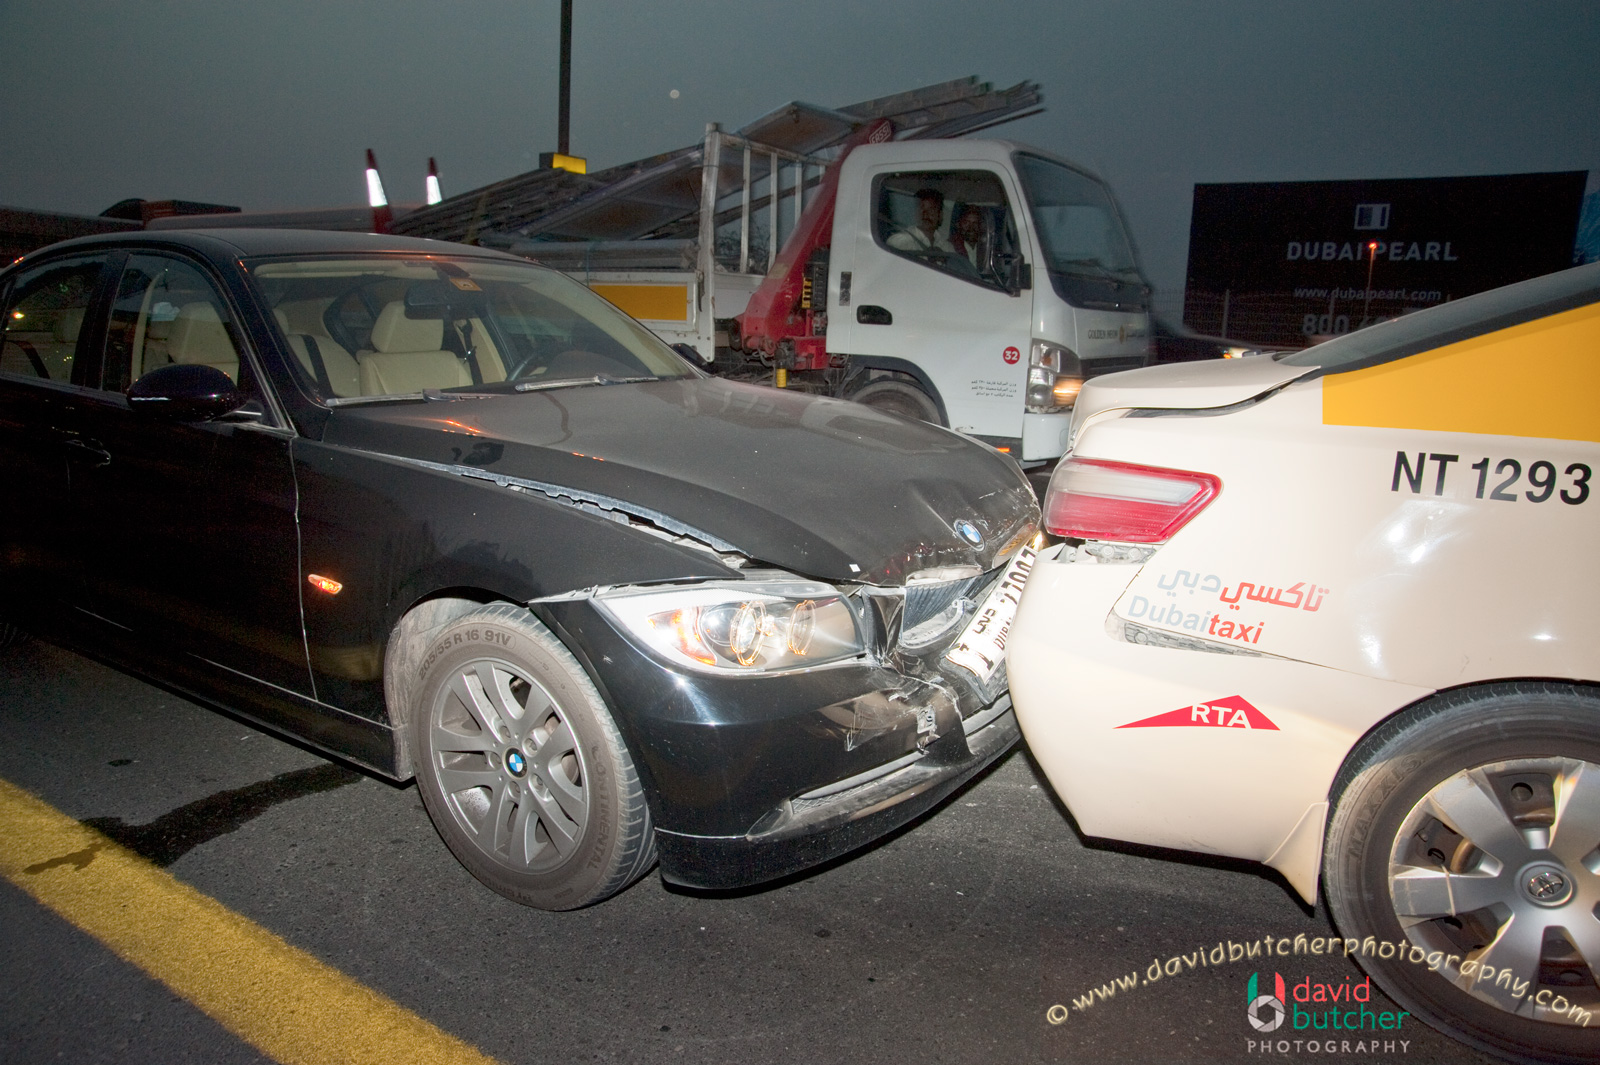 David Butcher Photography: Yet Another Car Accident :-(